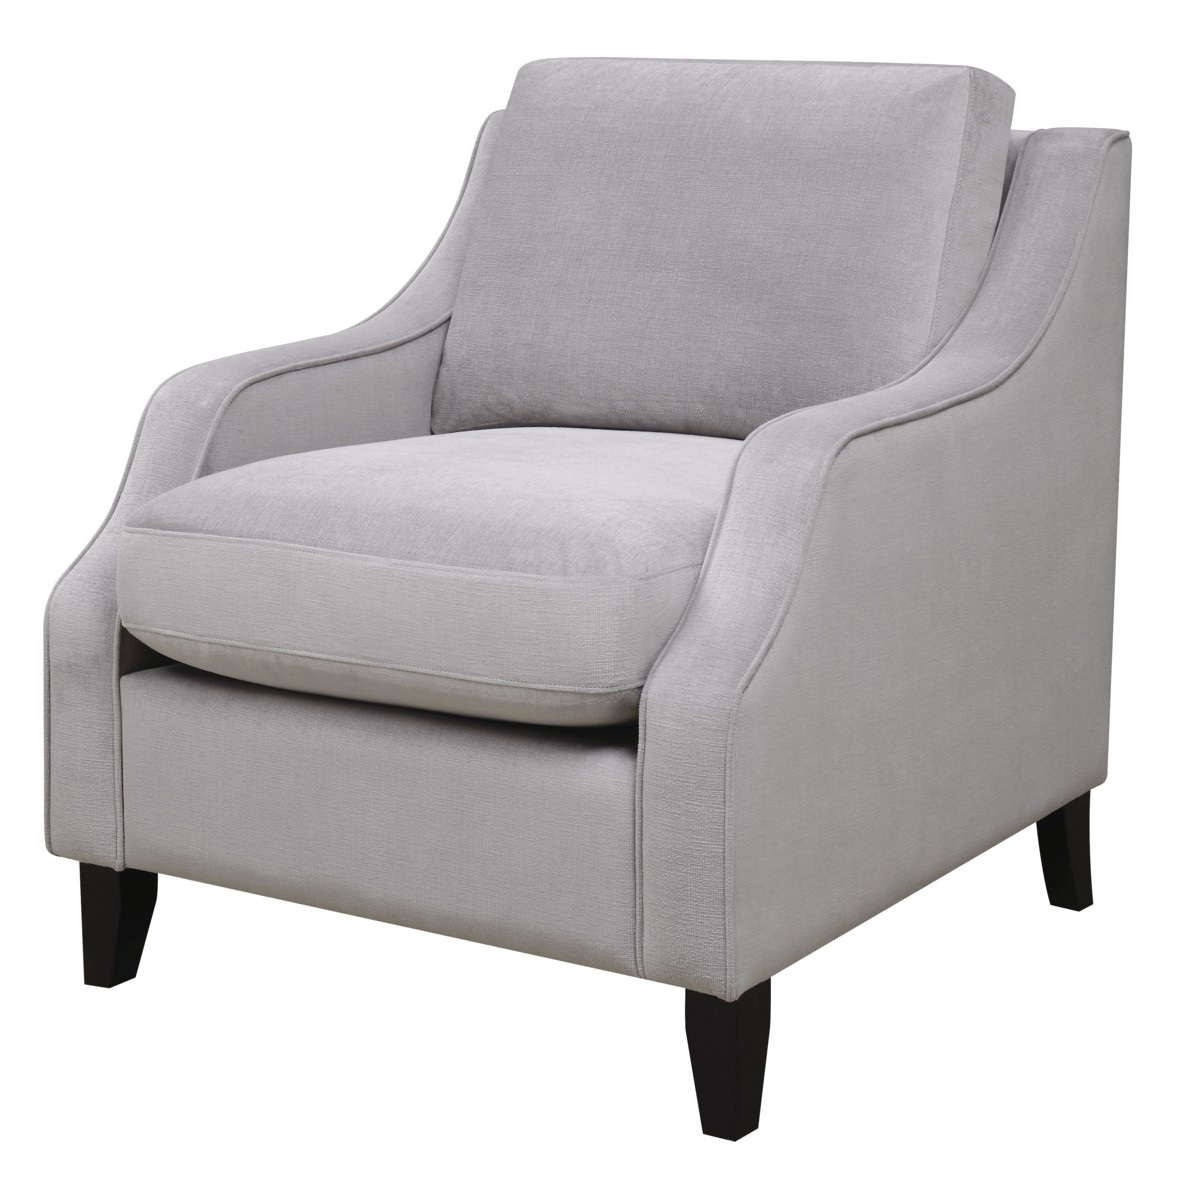 Grey Upholstered Chair Isabelle Soft Grey Upholstered Feather Down Chair